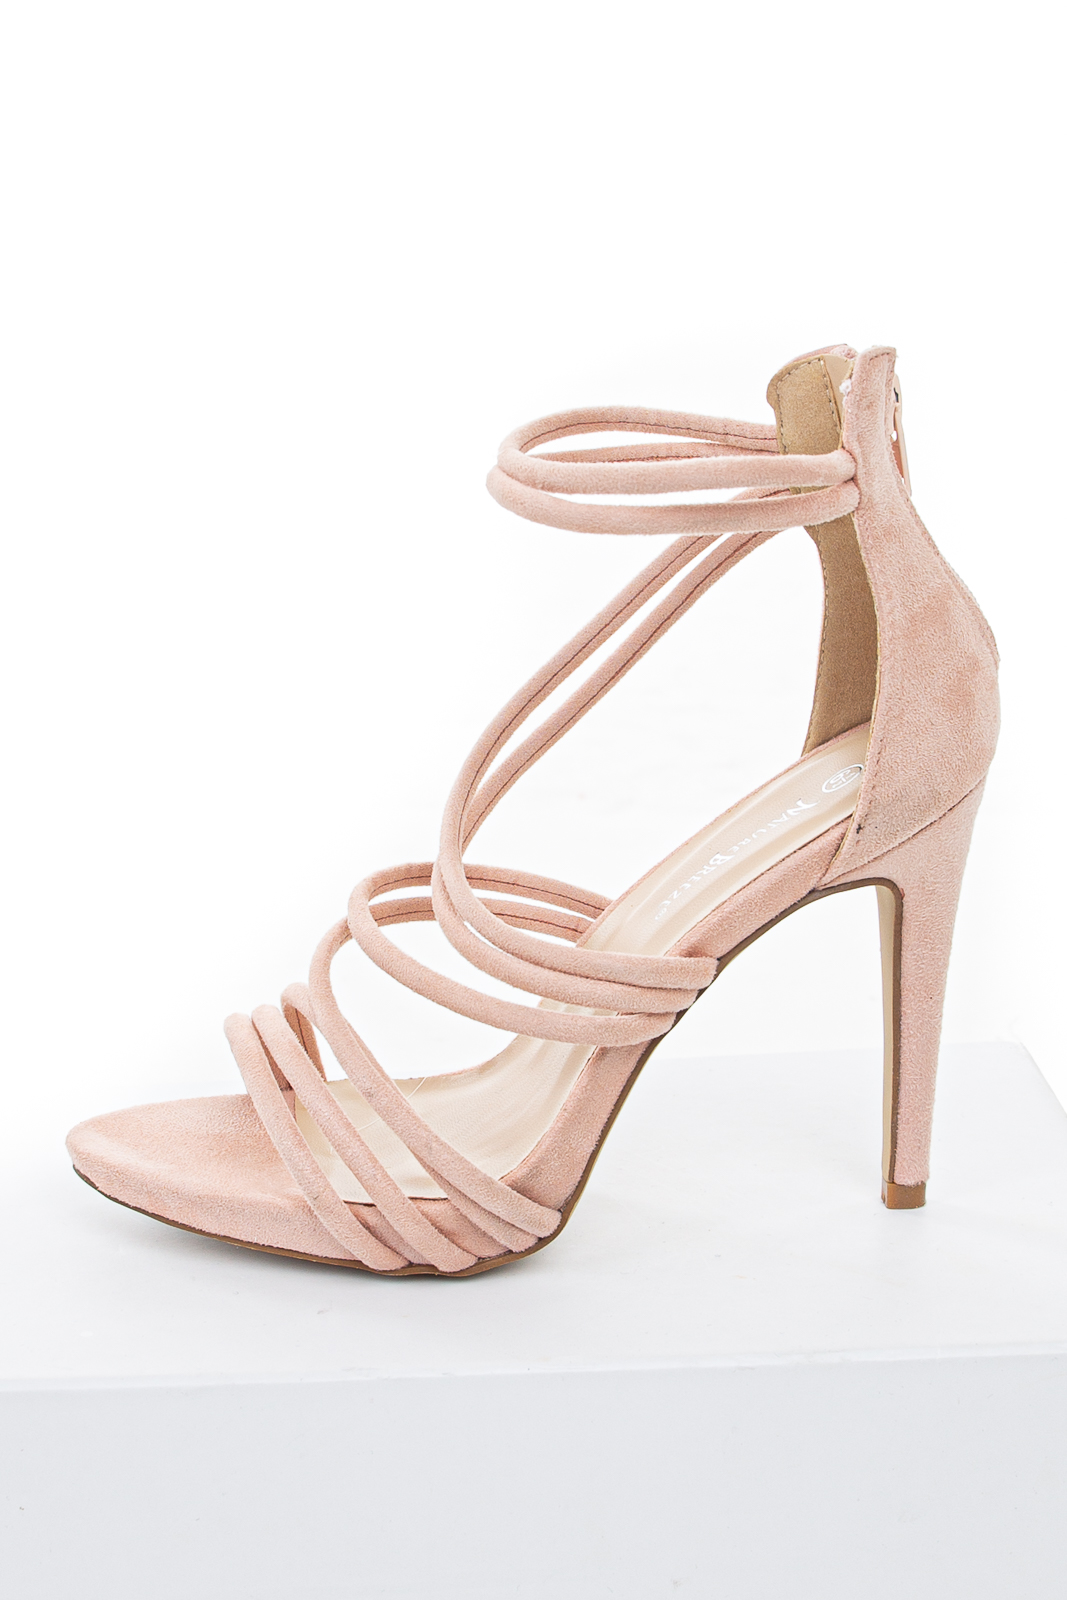 Blush Faux Suede Strappy High Heel with Zipper Closure